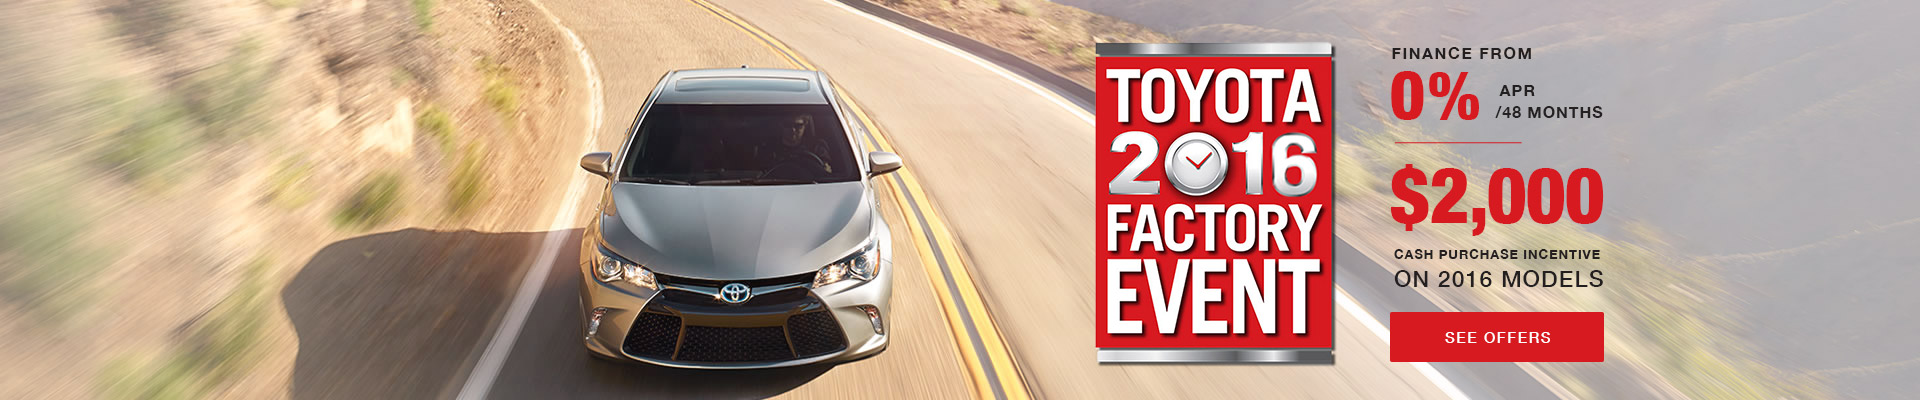 Toyota 2016 Factory Event. Finance from 0% APR for 48 months / get up to $2,000 cash back on 2016 mo